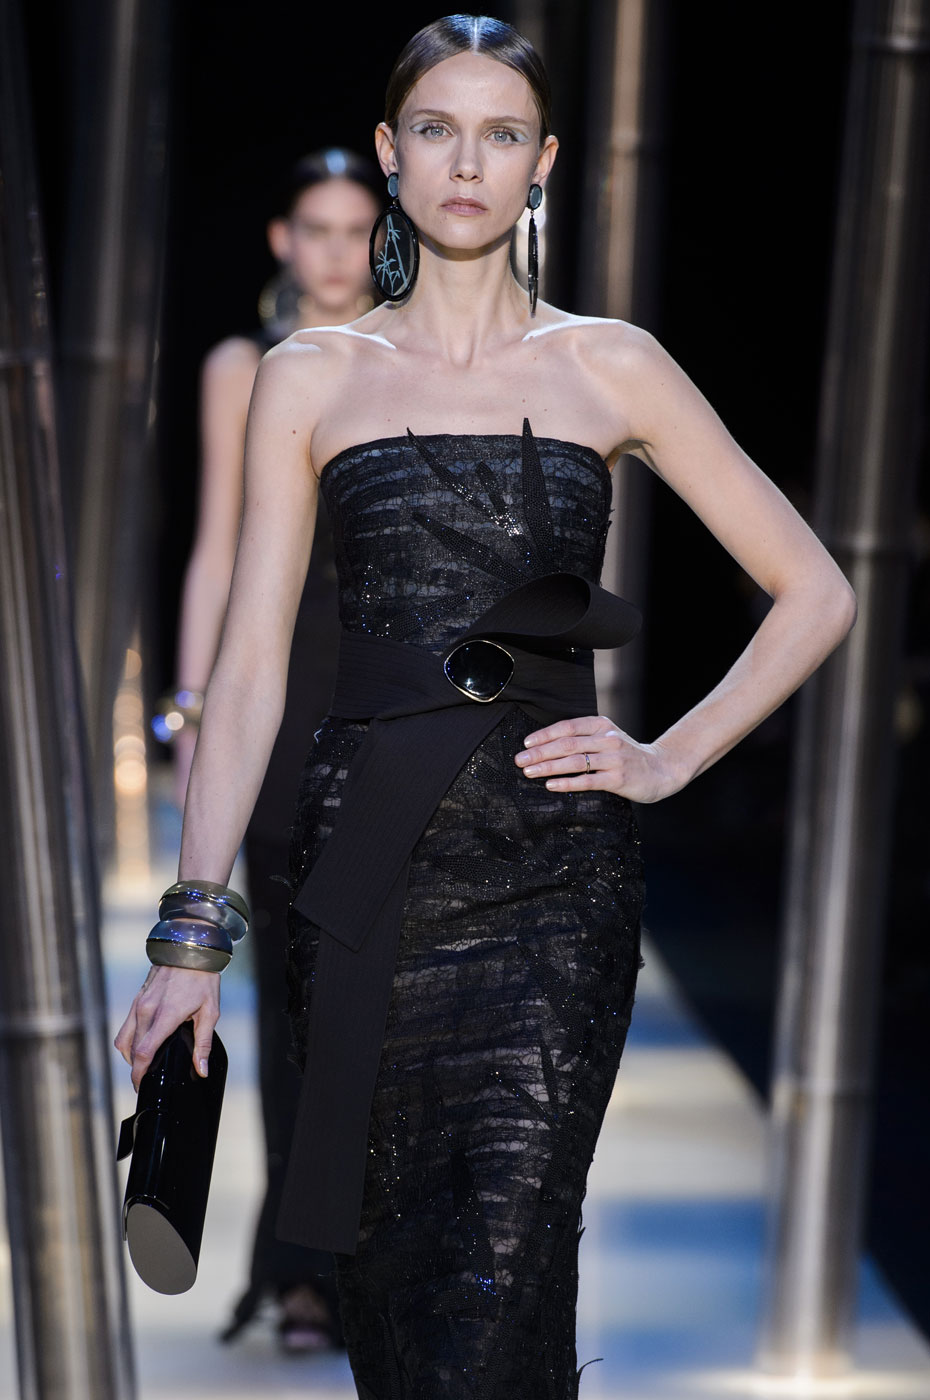 Giorgio-armani-Prive-fashion-runway-show-haute-couture-paris-spring-2015-the-impression-100